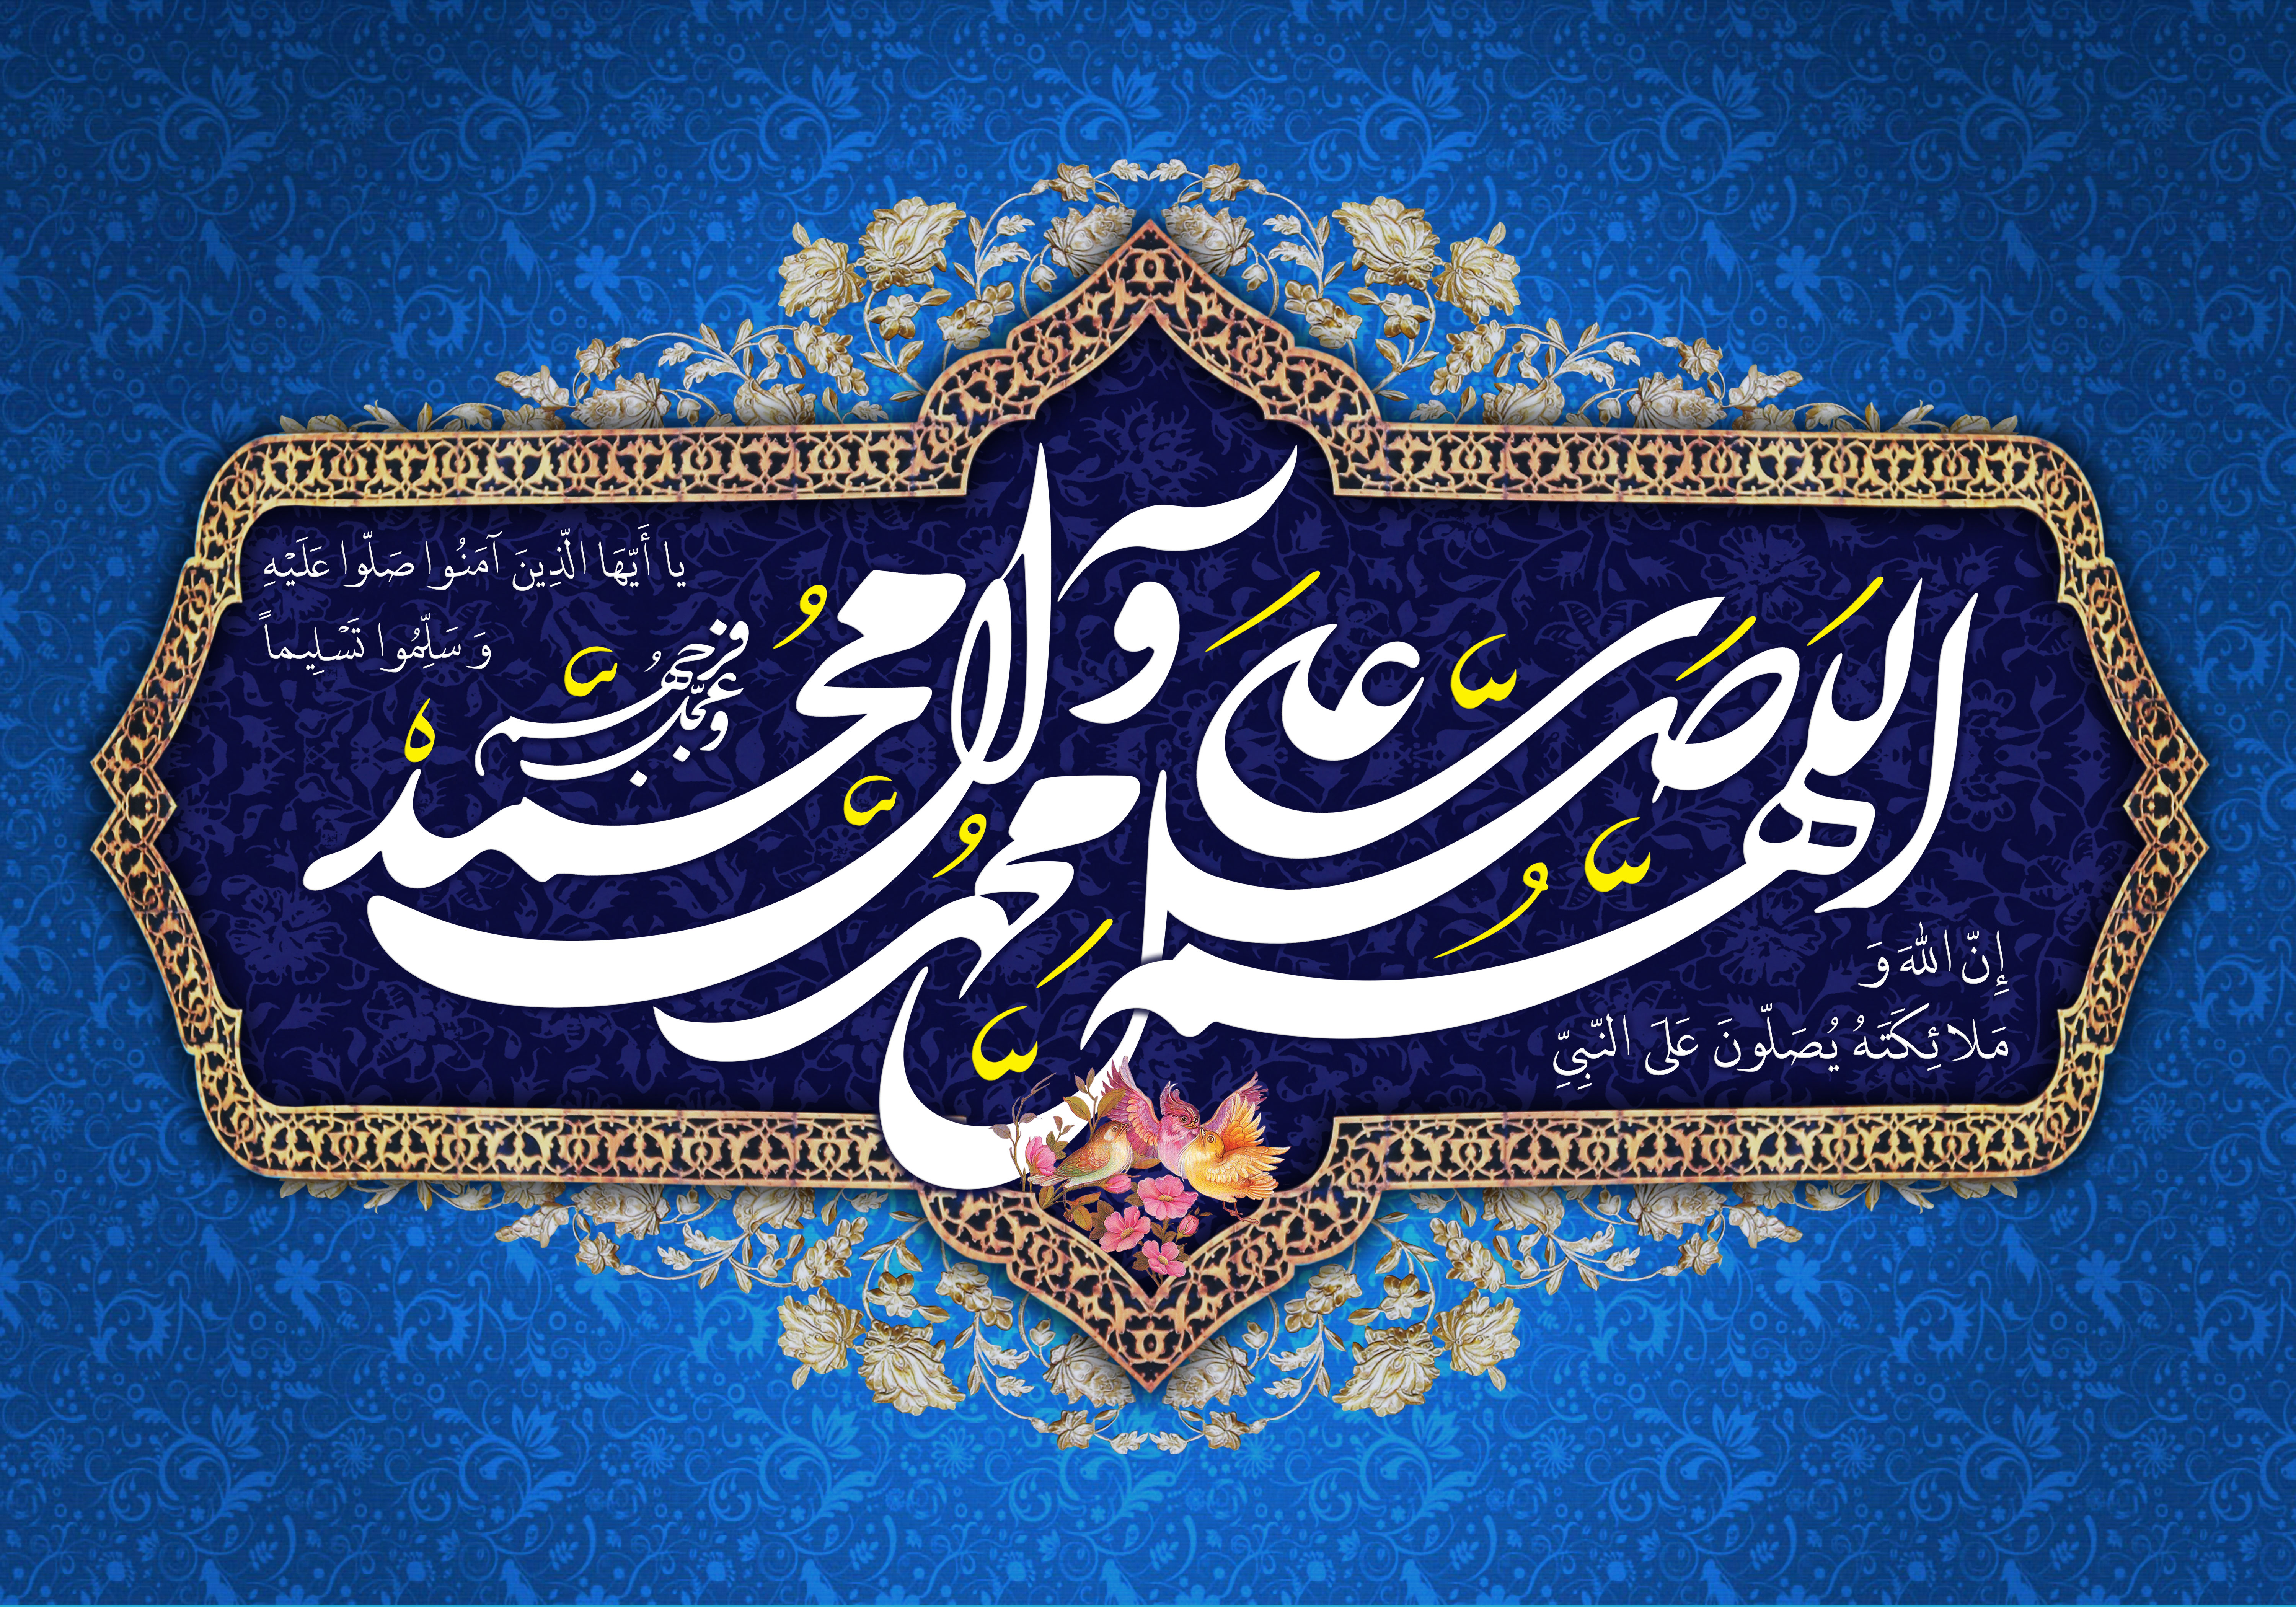 The remedy for anger The Center for Compilation and Publication of the Works of Grand Ayatollah Bahjat